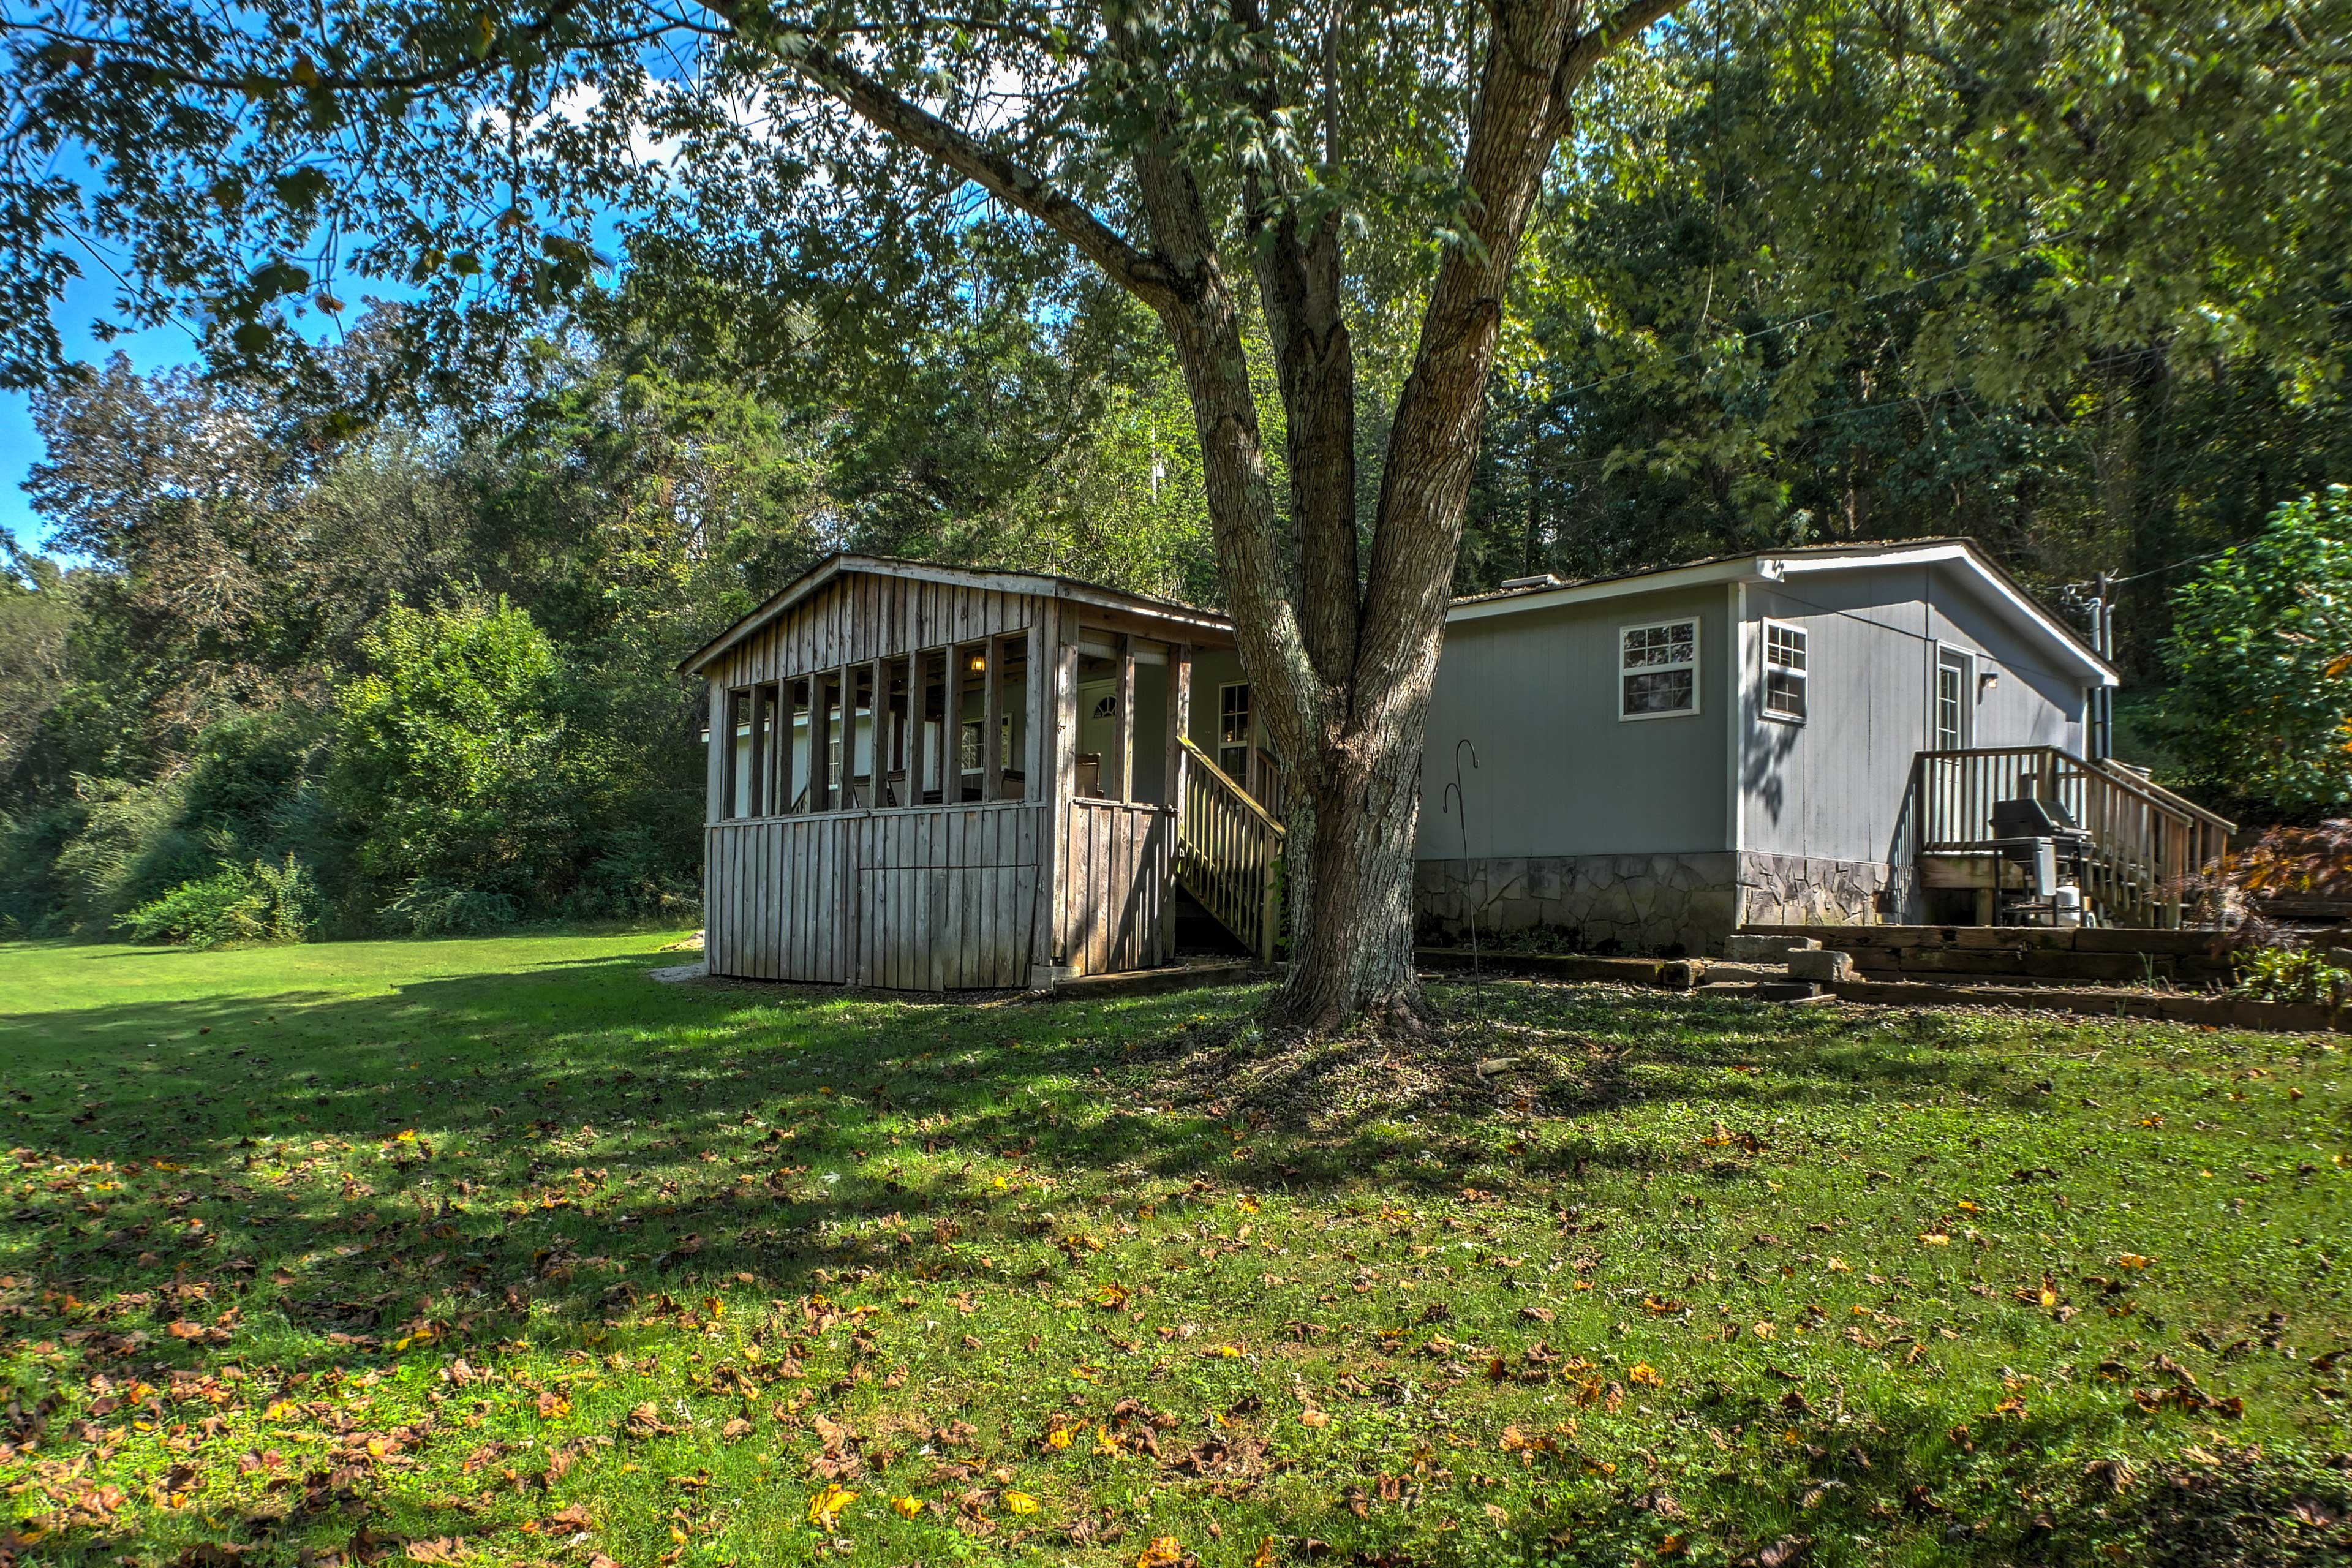 This 3-bedroom, 2-bath home offers 6 guests accommodations with creek access.